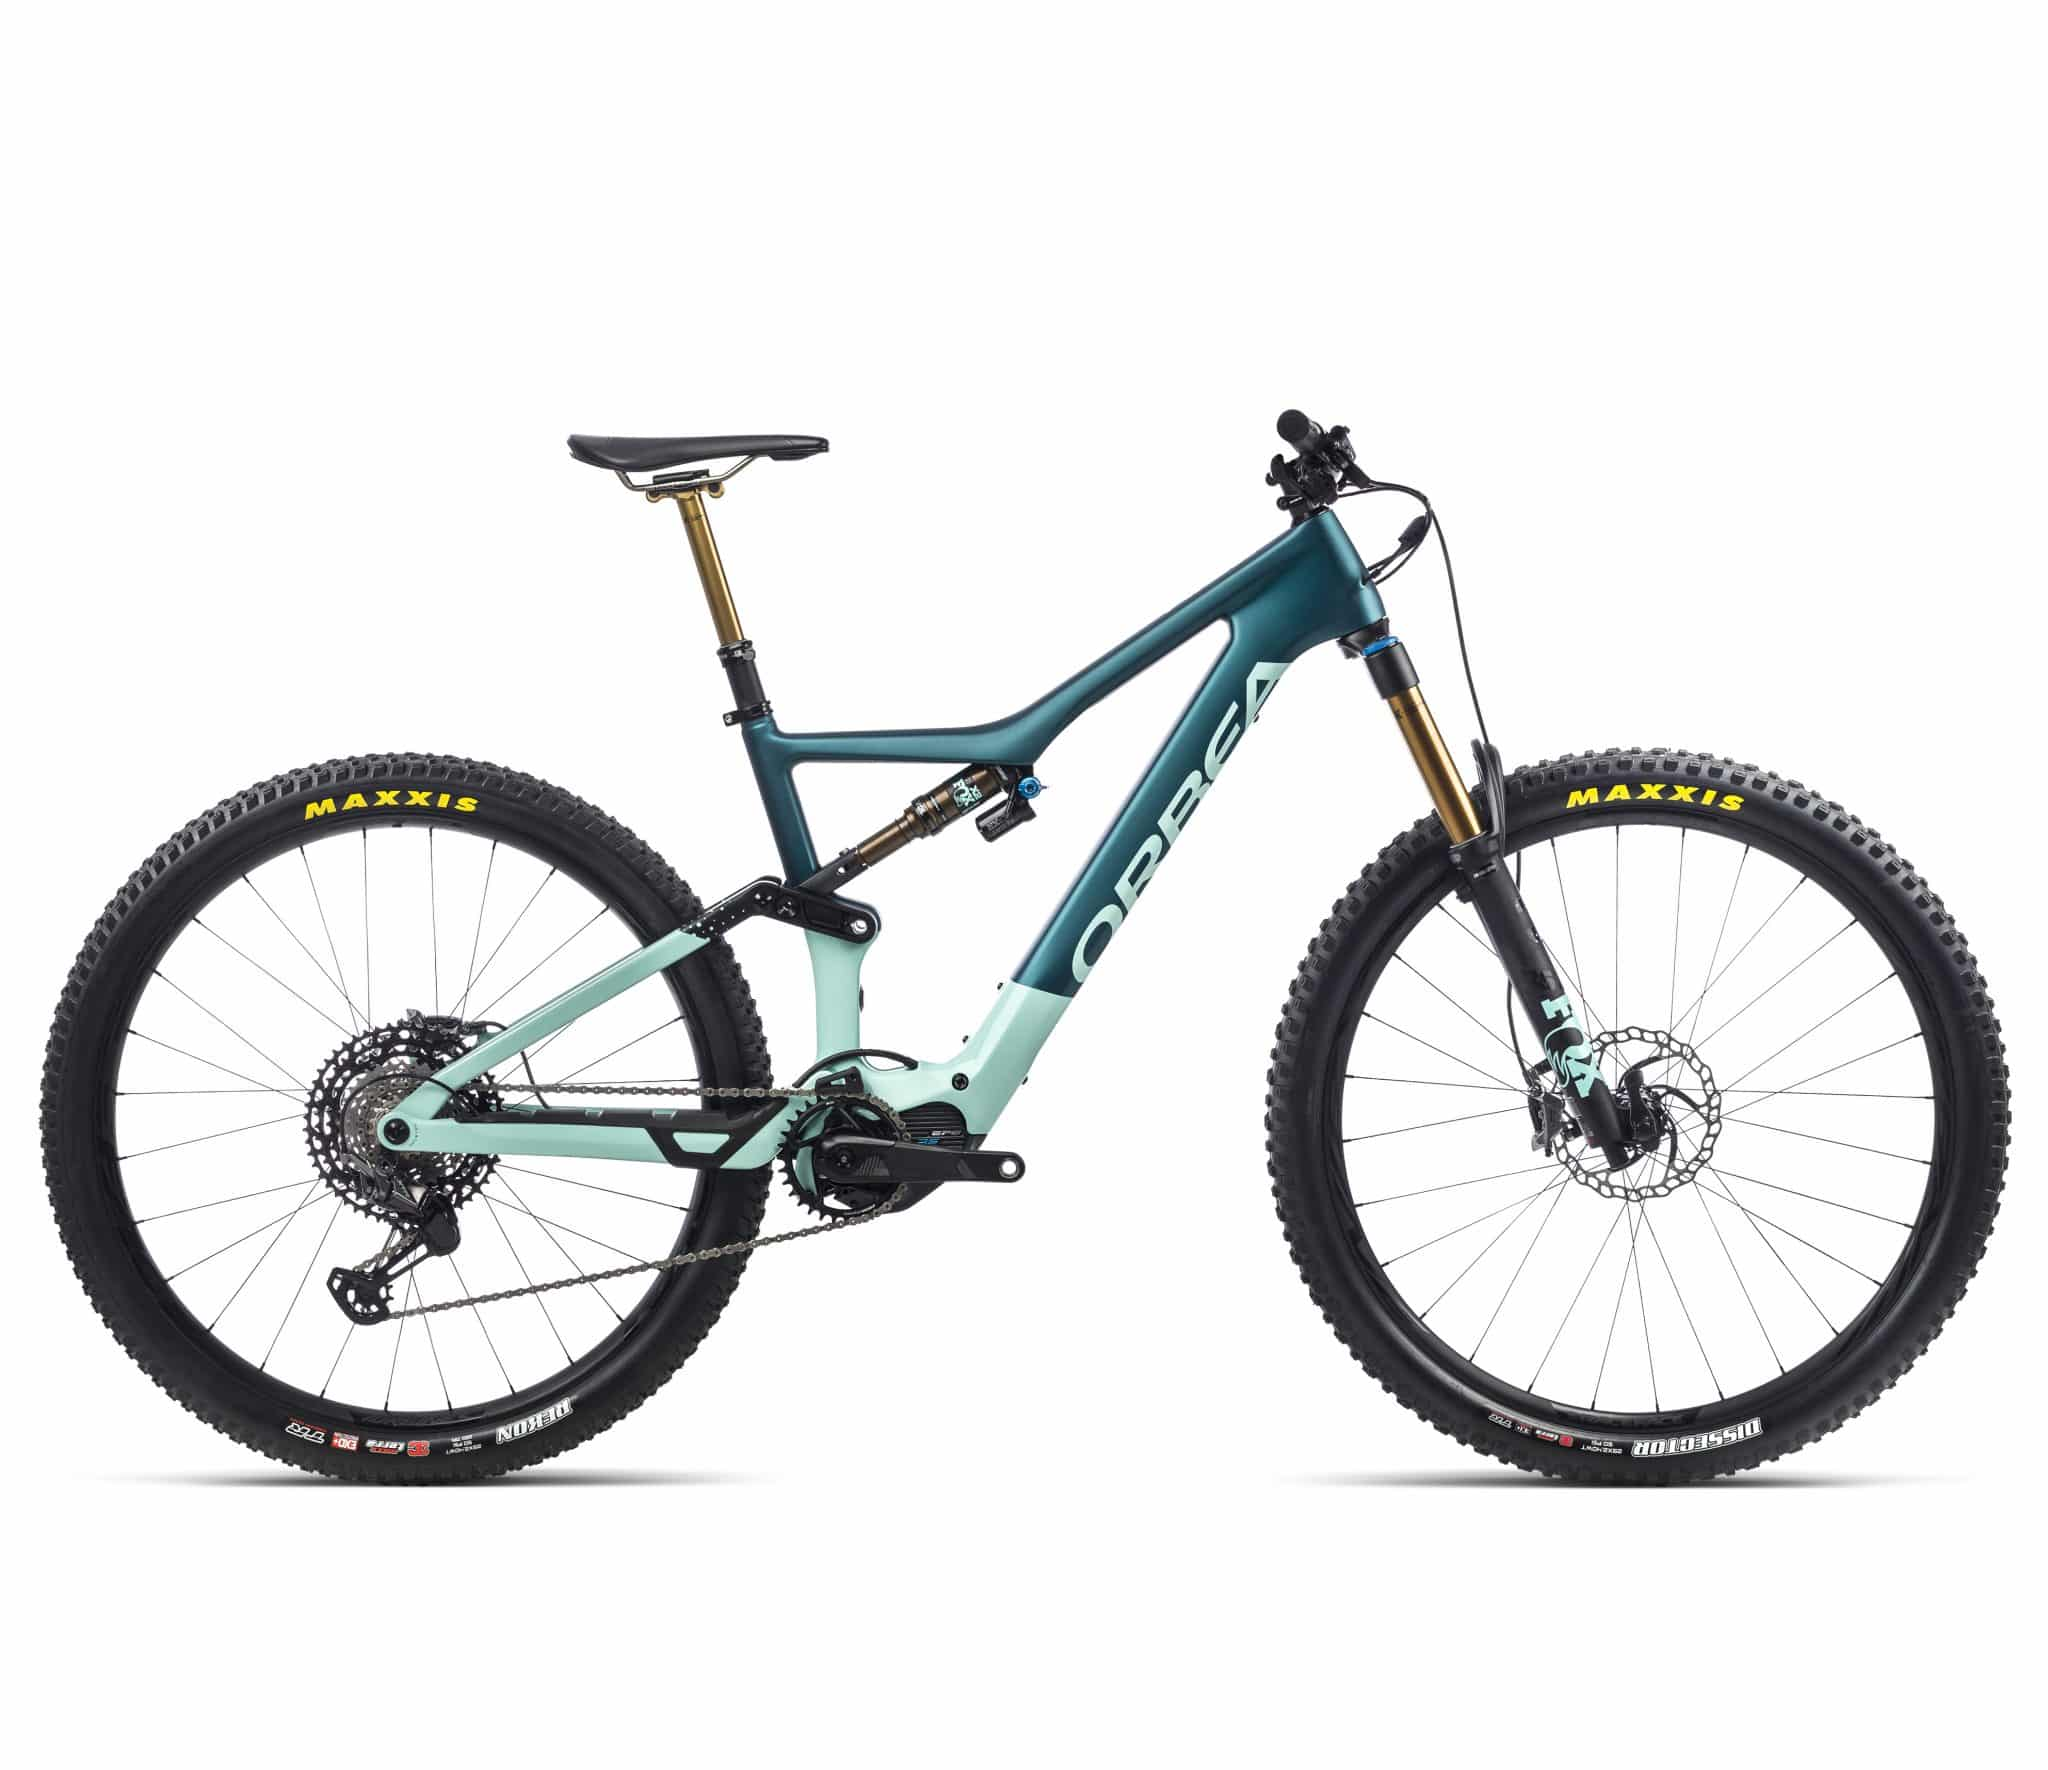 ORBEA'S NEW RIDER SYNERGY CONCEPT AND NEW BIKES | Electric Bike Action